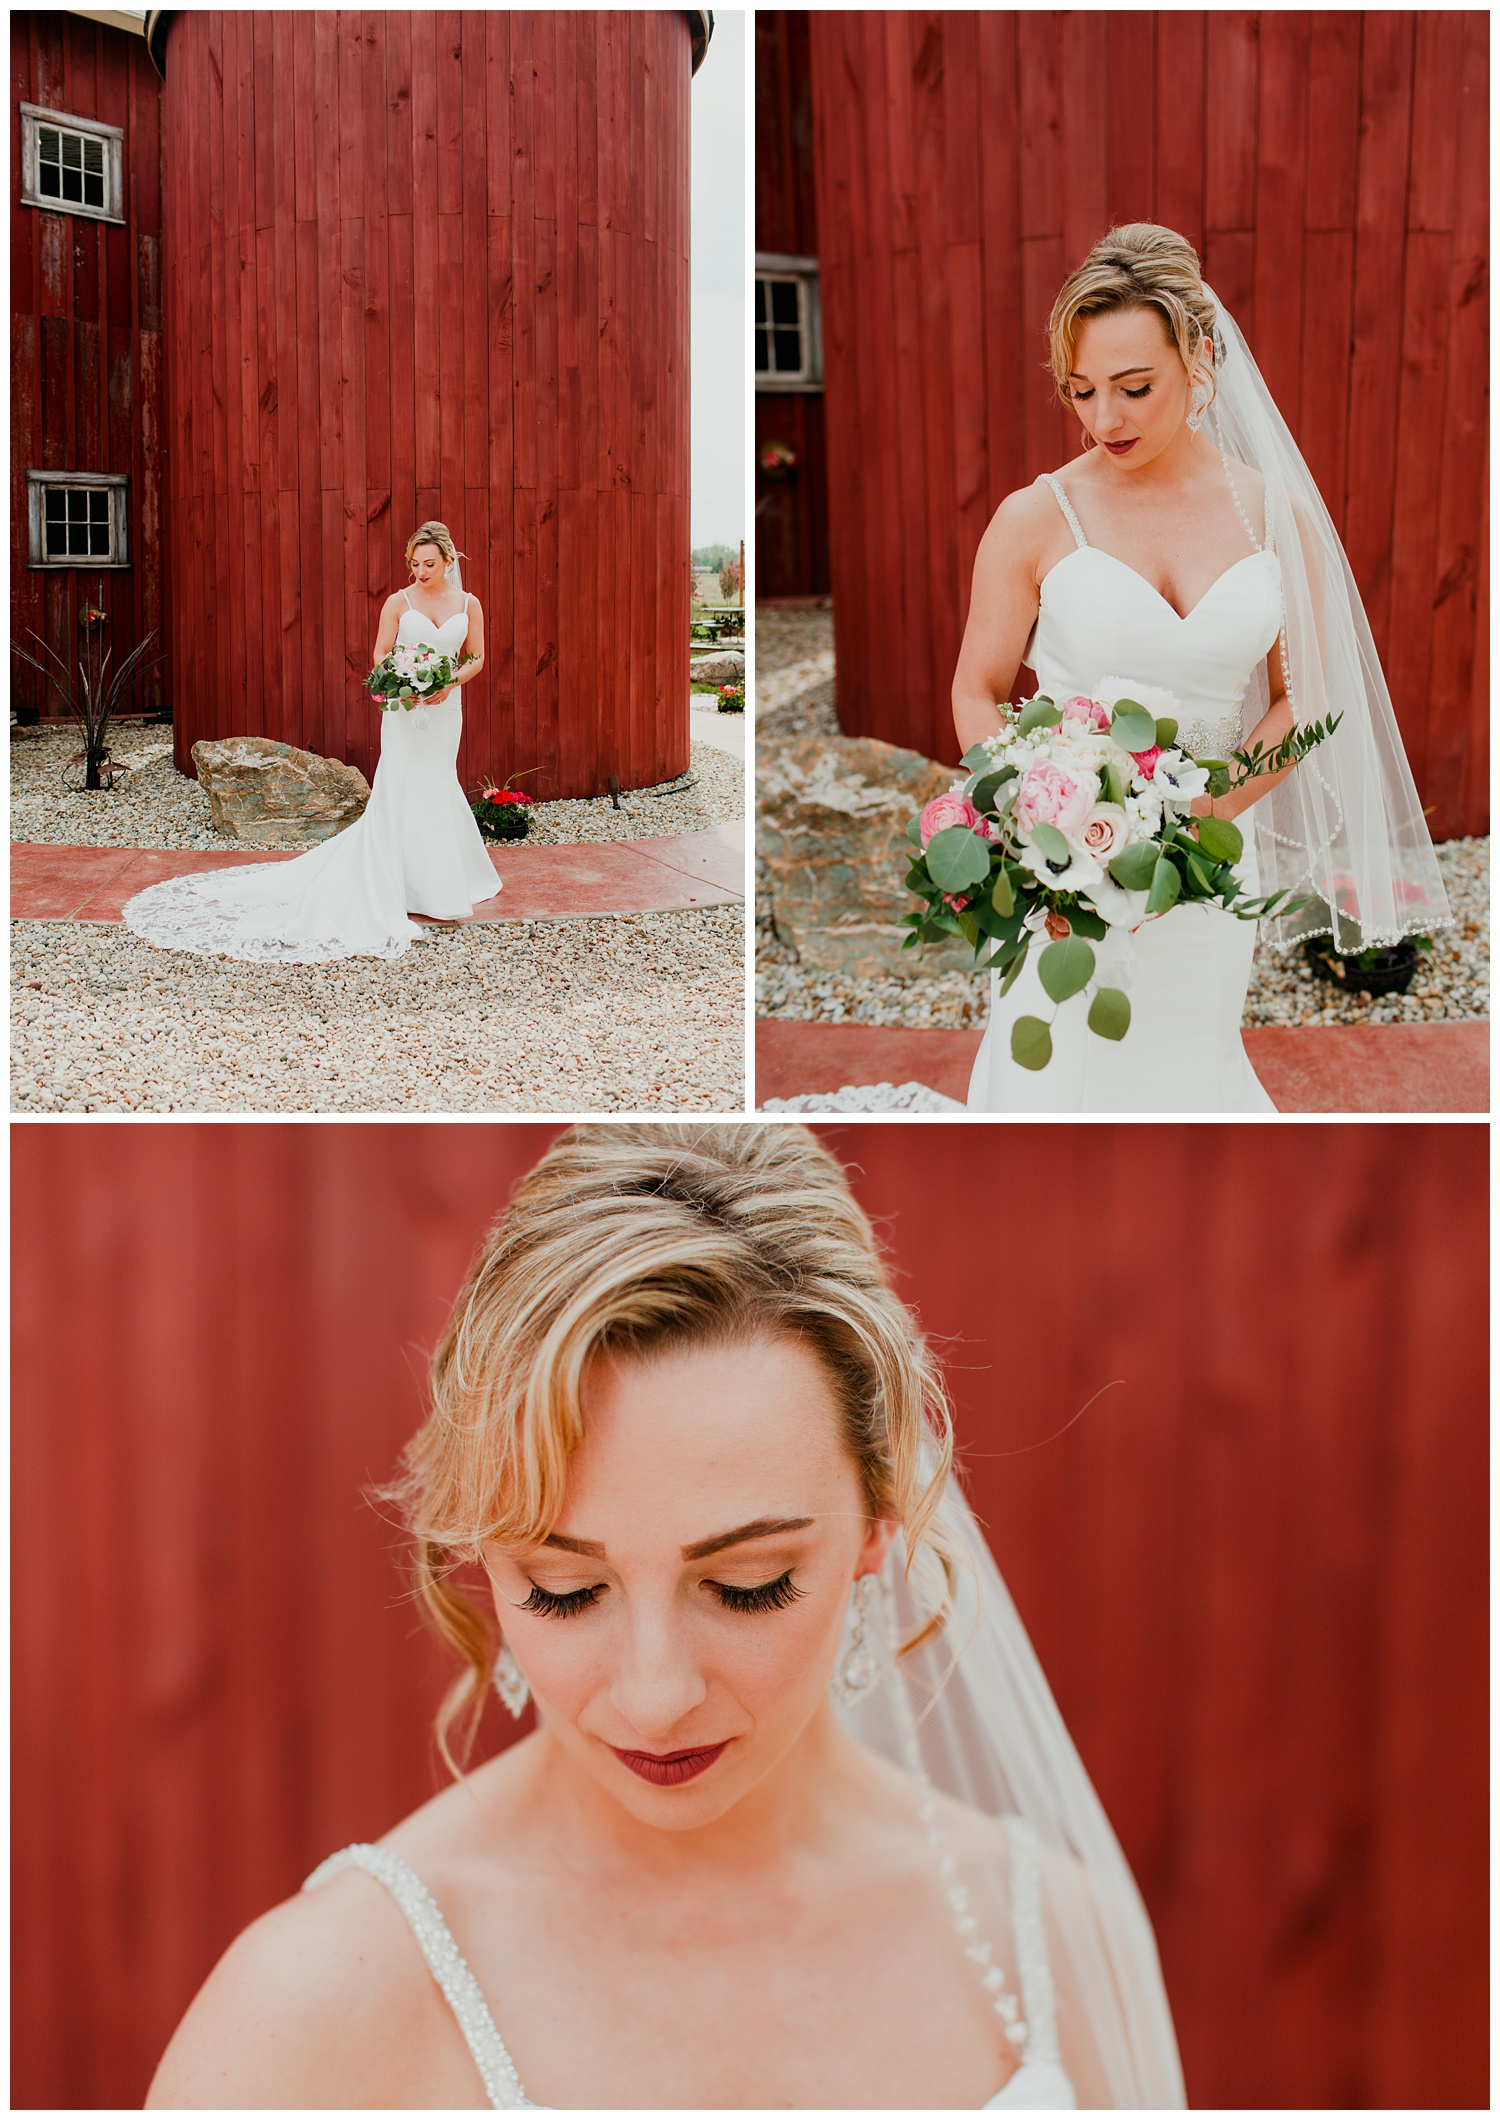 blissfulbarn threeoaks michigan wedding photography journeymandistillery39.jpg